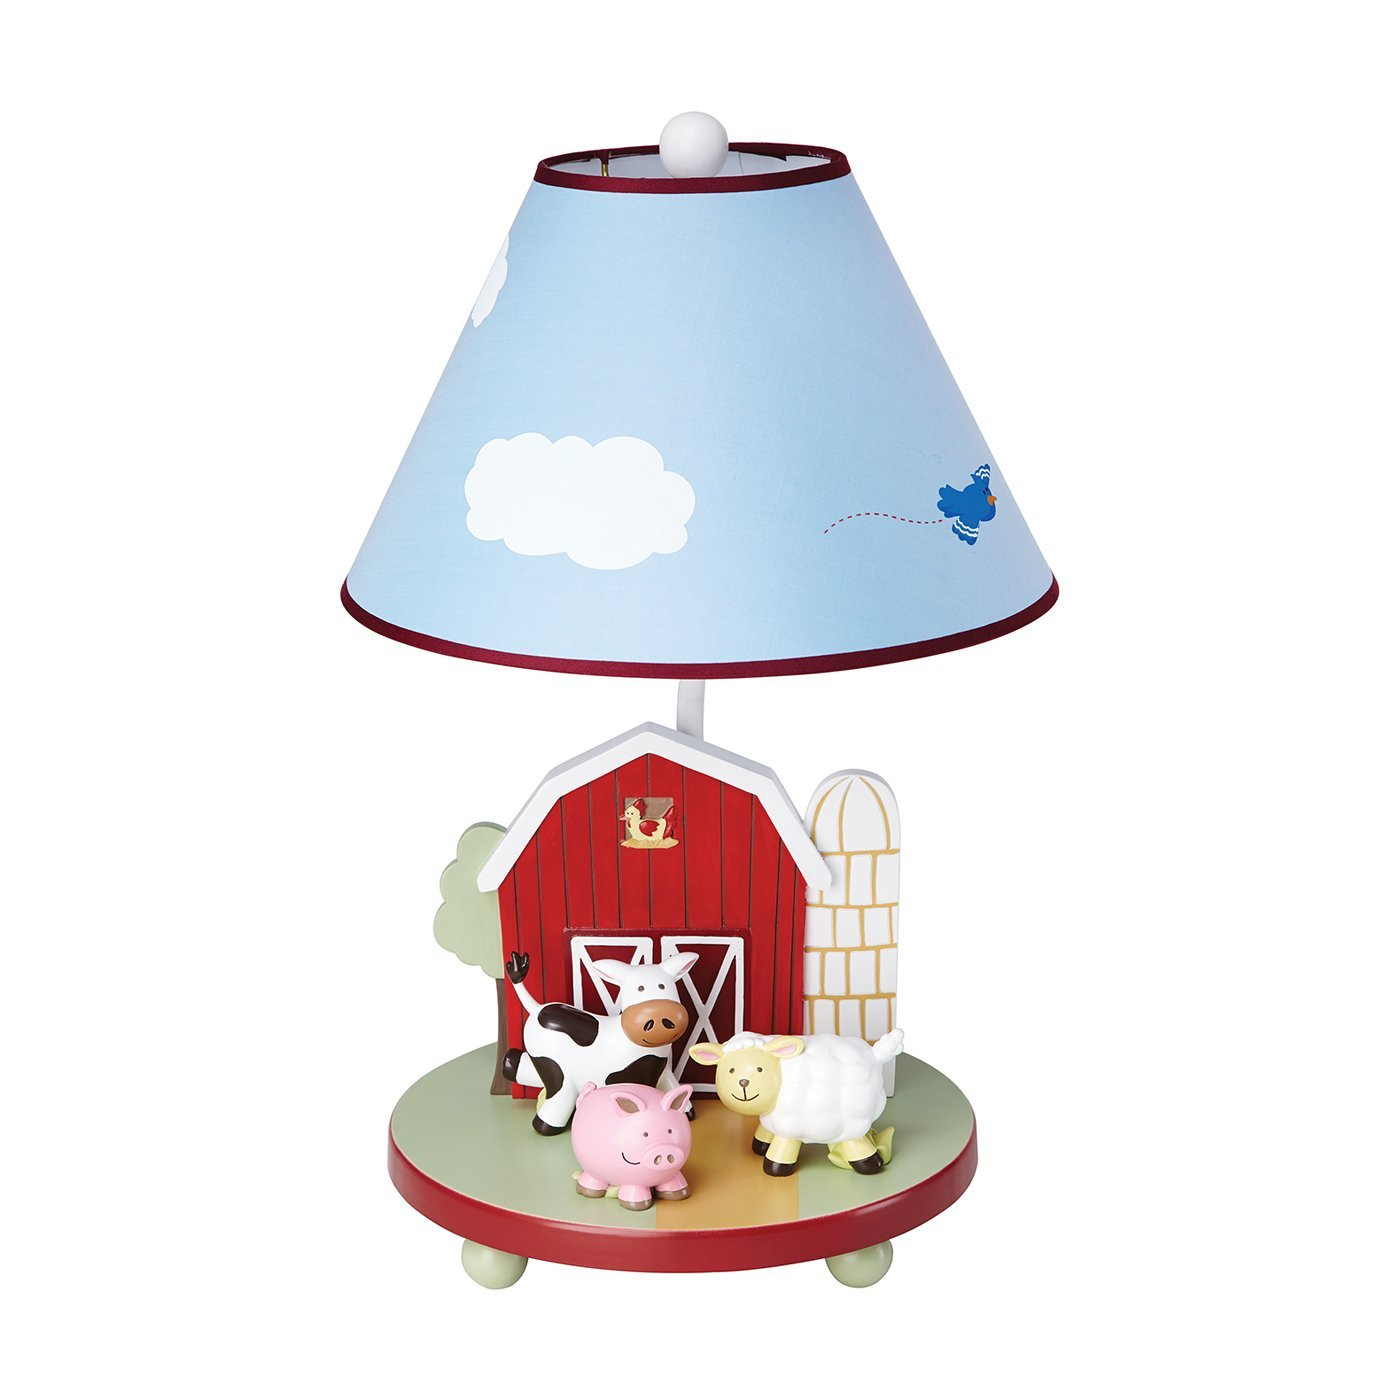 s best bedroom childrens lights toddler size light of children shade table projector room lamp rooms night kids ceiling choose decorative boys shades full nursery your for baby lamps